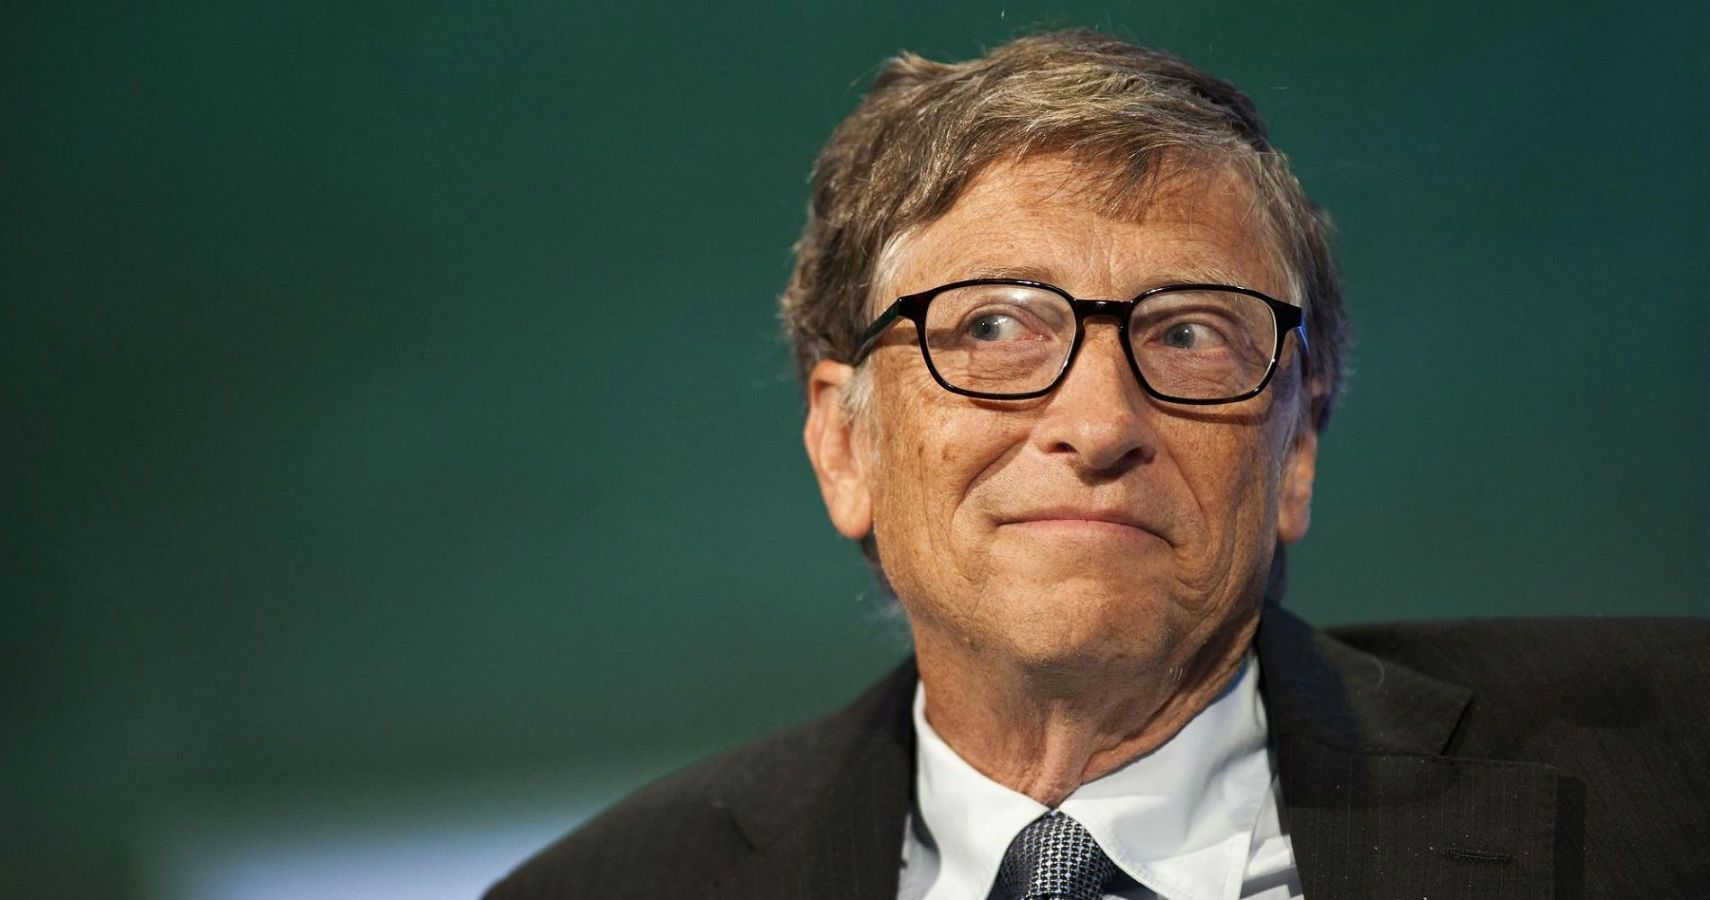 Watch Bill Gates Try To Guess The Price Of Every Day Items